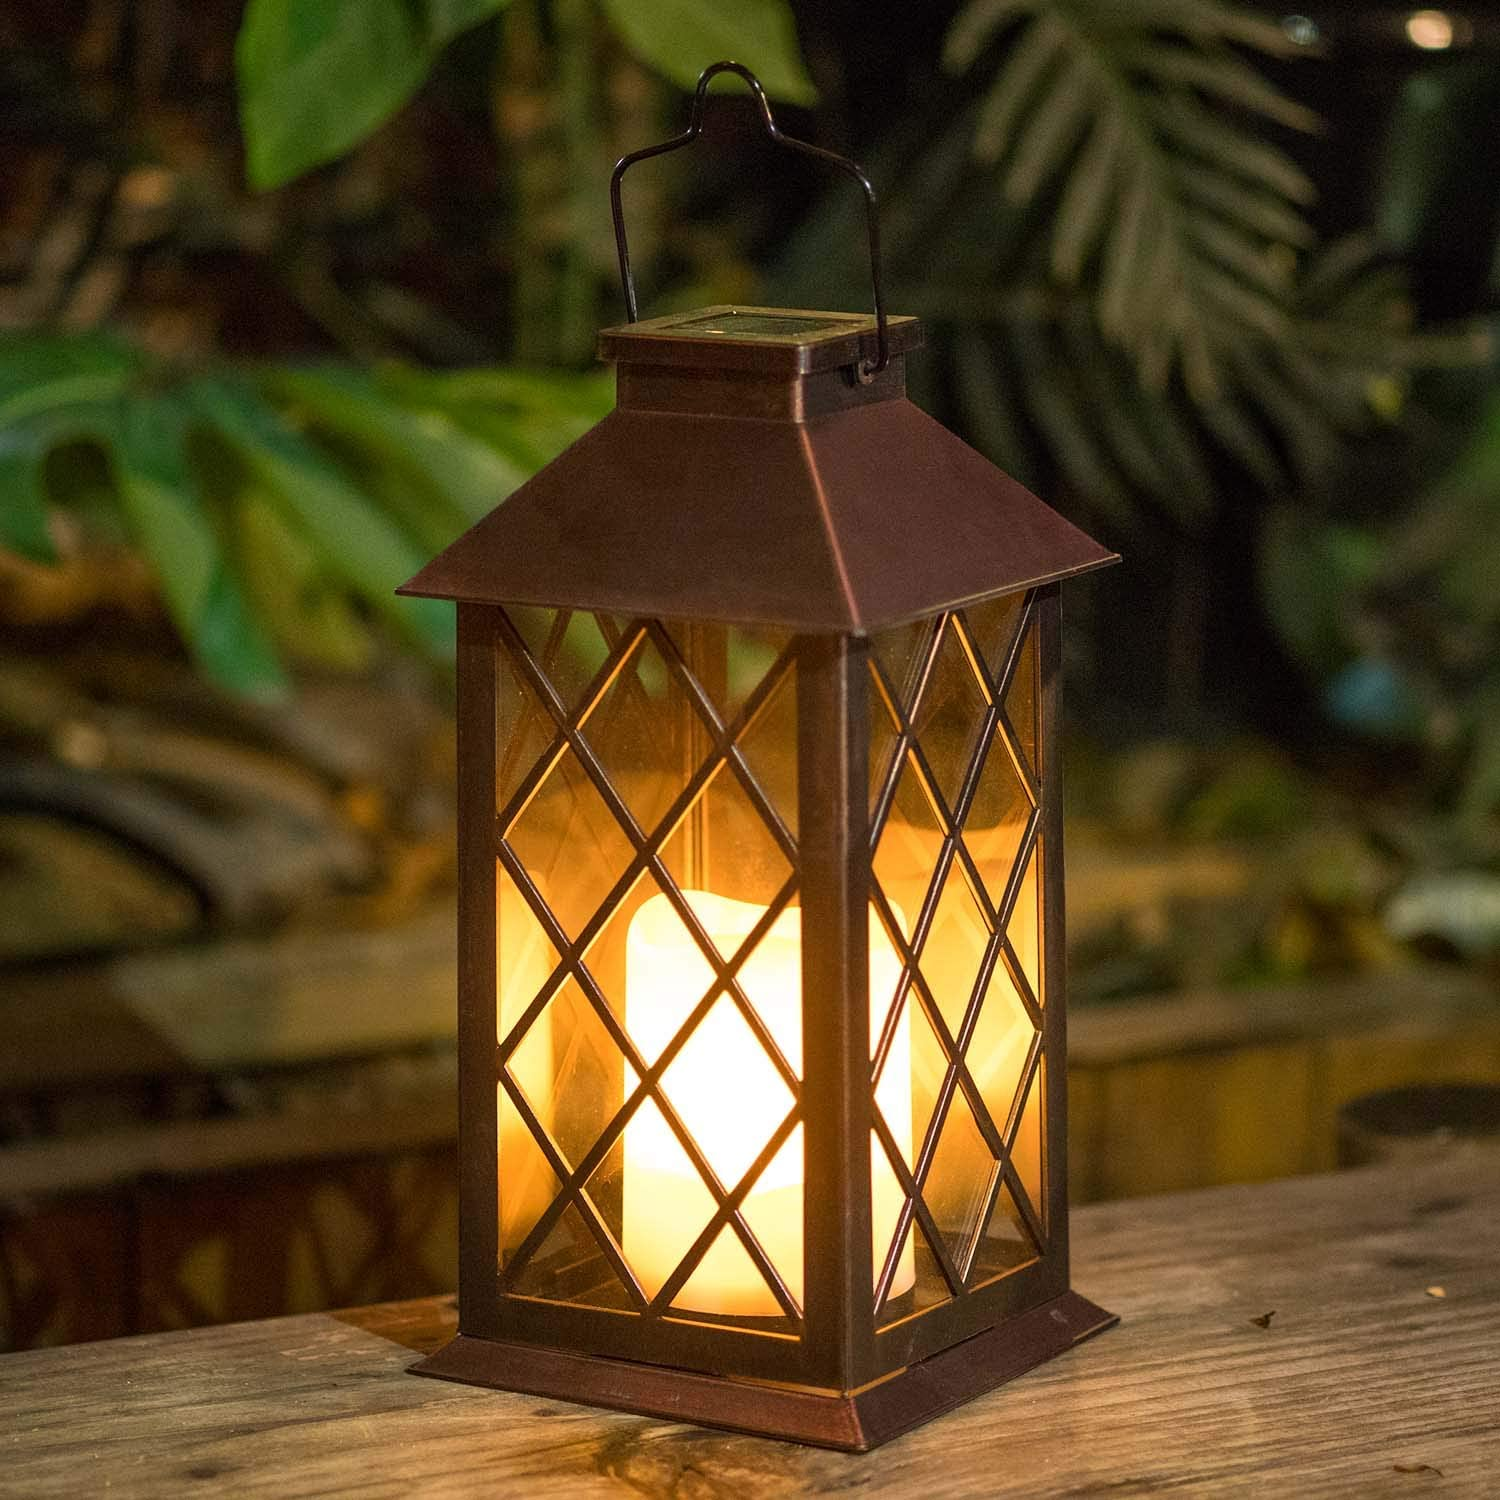 Homeimpro Solar Lantern Hanging Garden Outdoor Lights Flickering Flameless Candle Waterproof LED Lamp for Table Patio Lawn (Bronze)